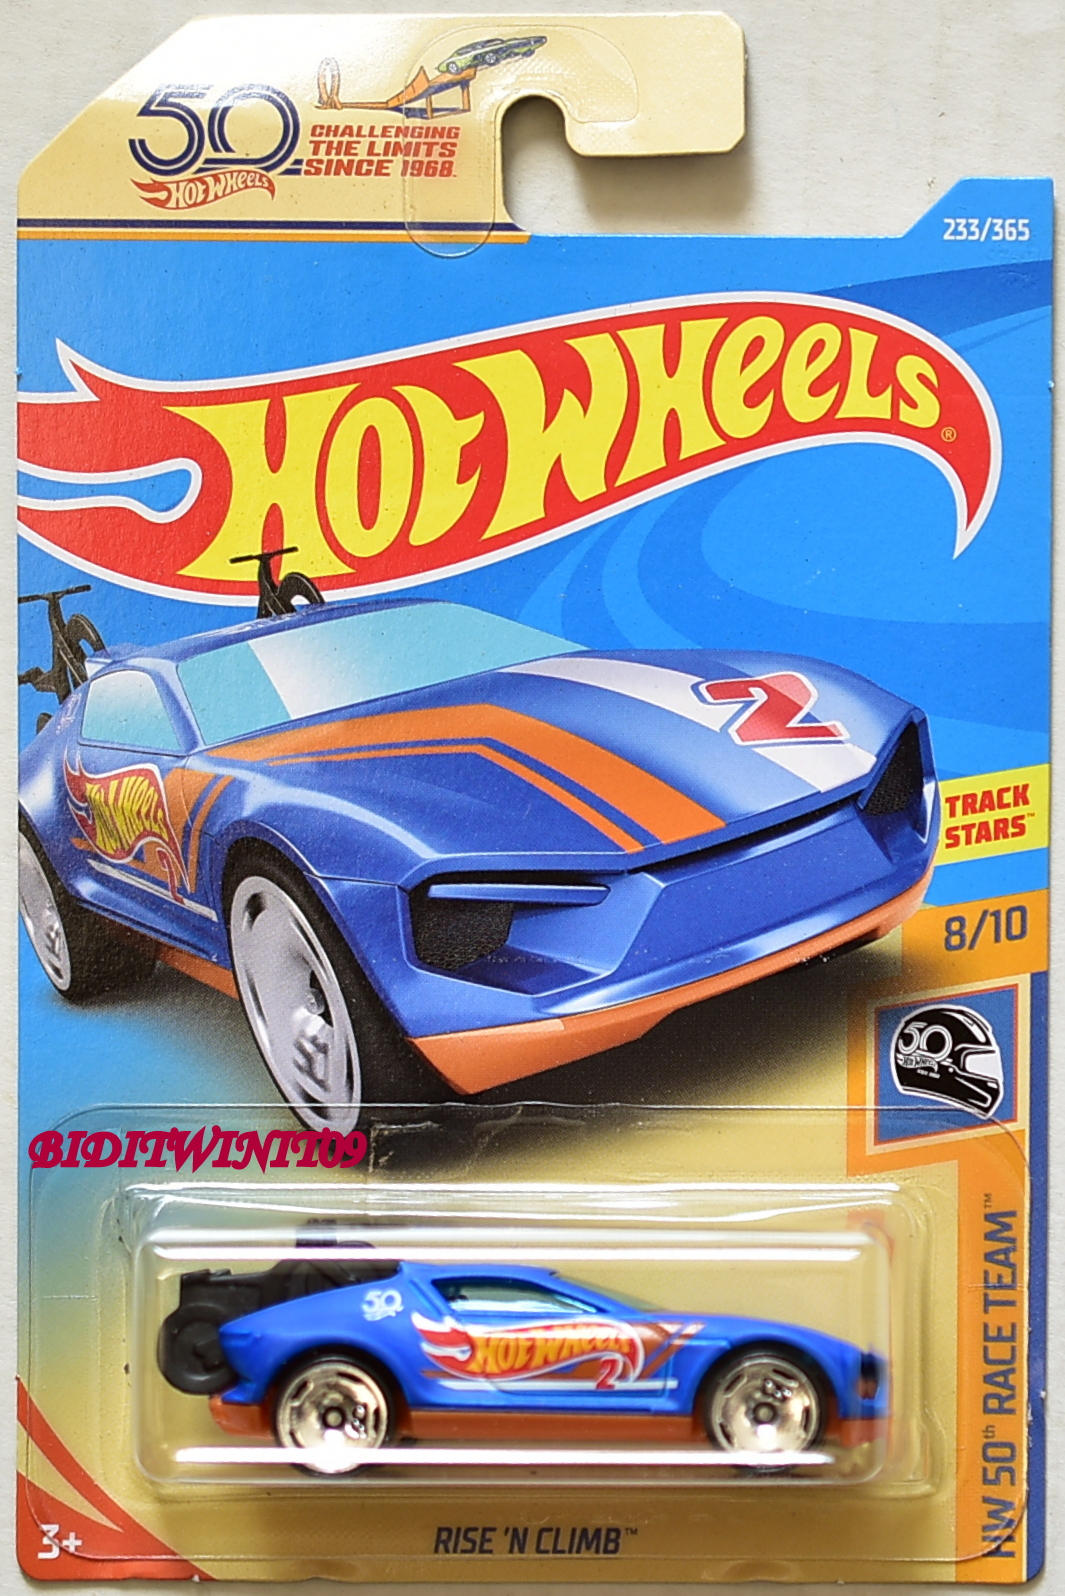 HOT WHEELS 2018 HW 50TH RACE TEAM RISE'N CLIMB BLUE